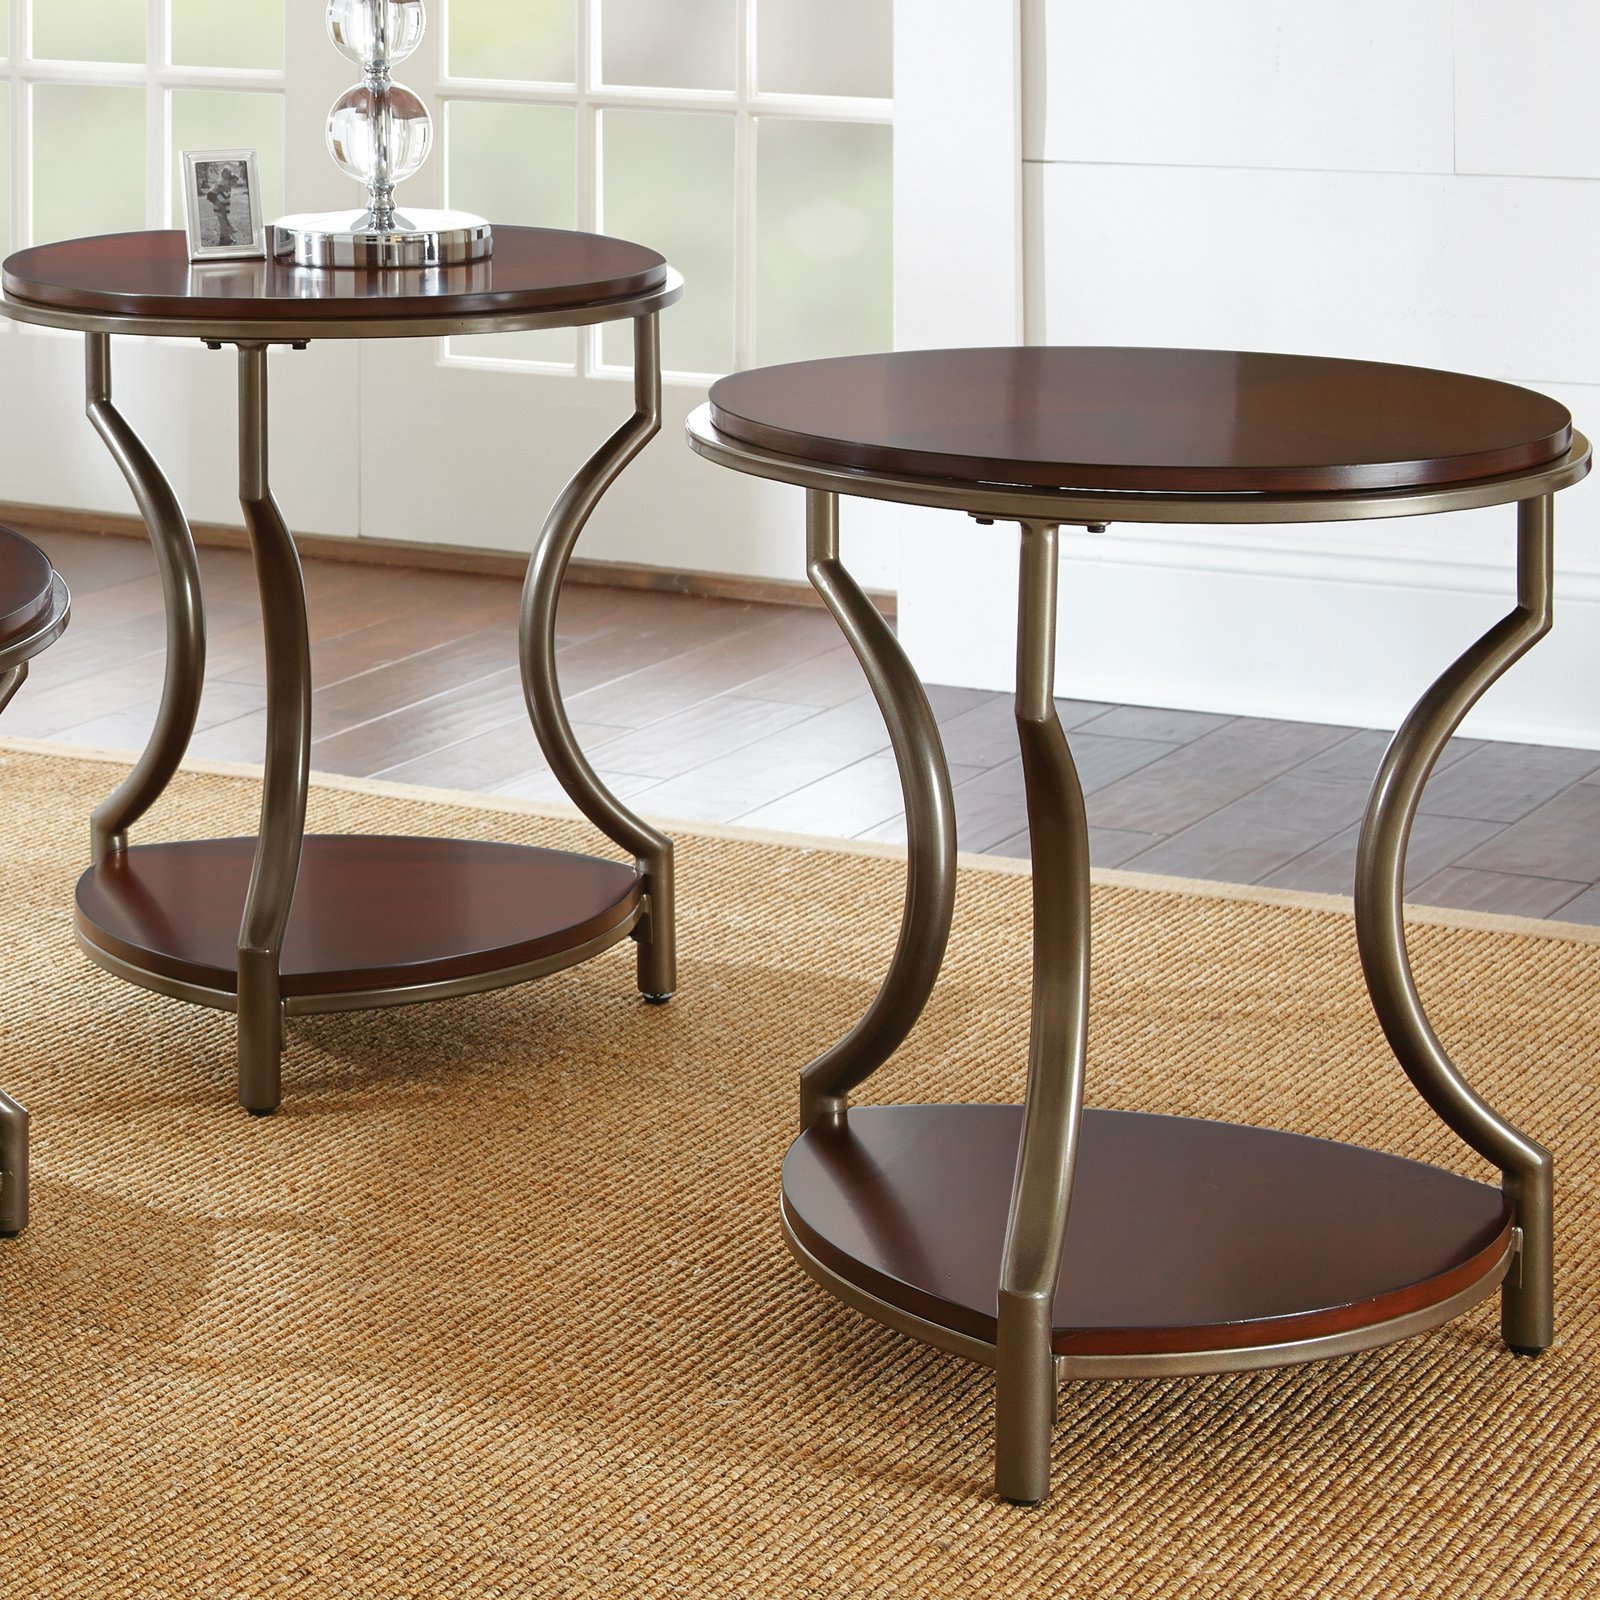 Steve Silver Maryland End Table - Medium Cherry